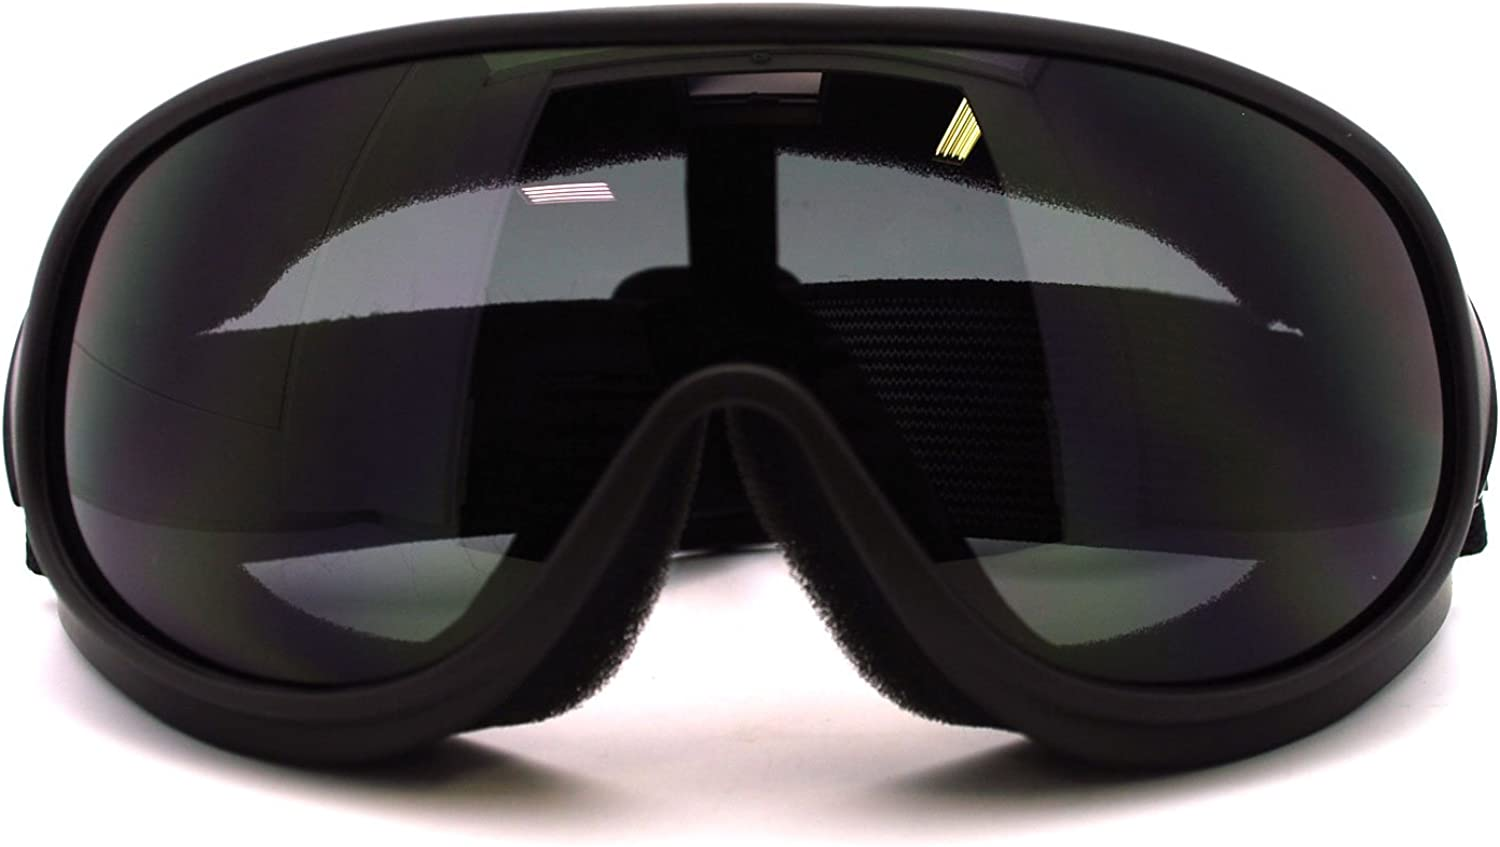 New Retro Cafe Racer Style Narrow Shatter Proof Anti Fog Lens Goggle